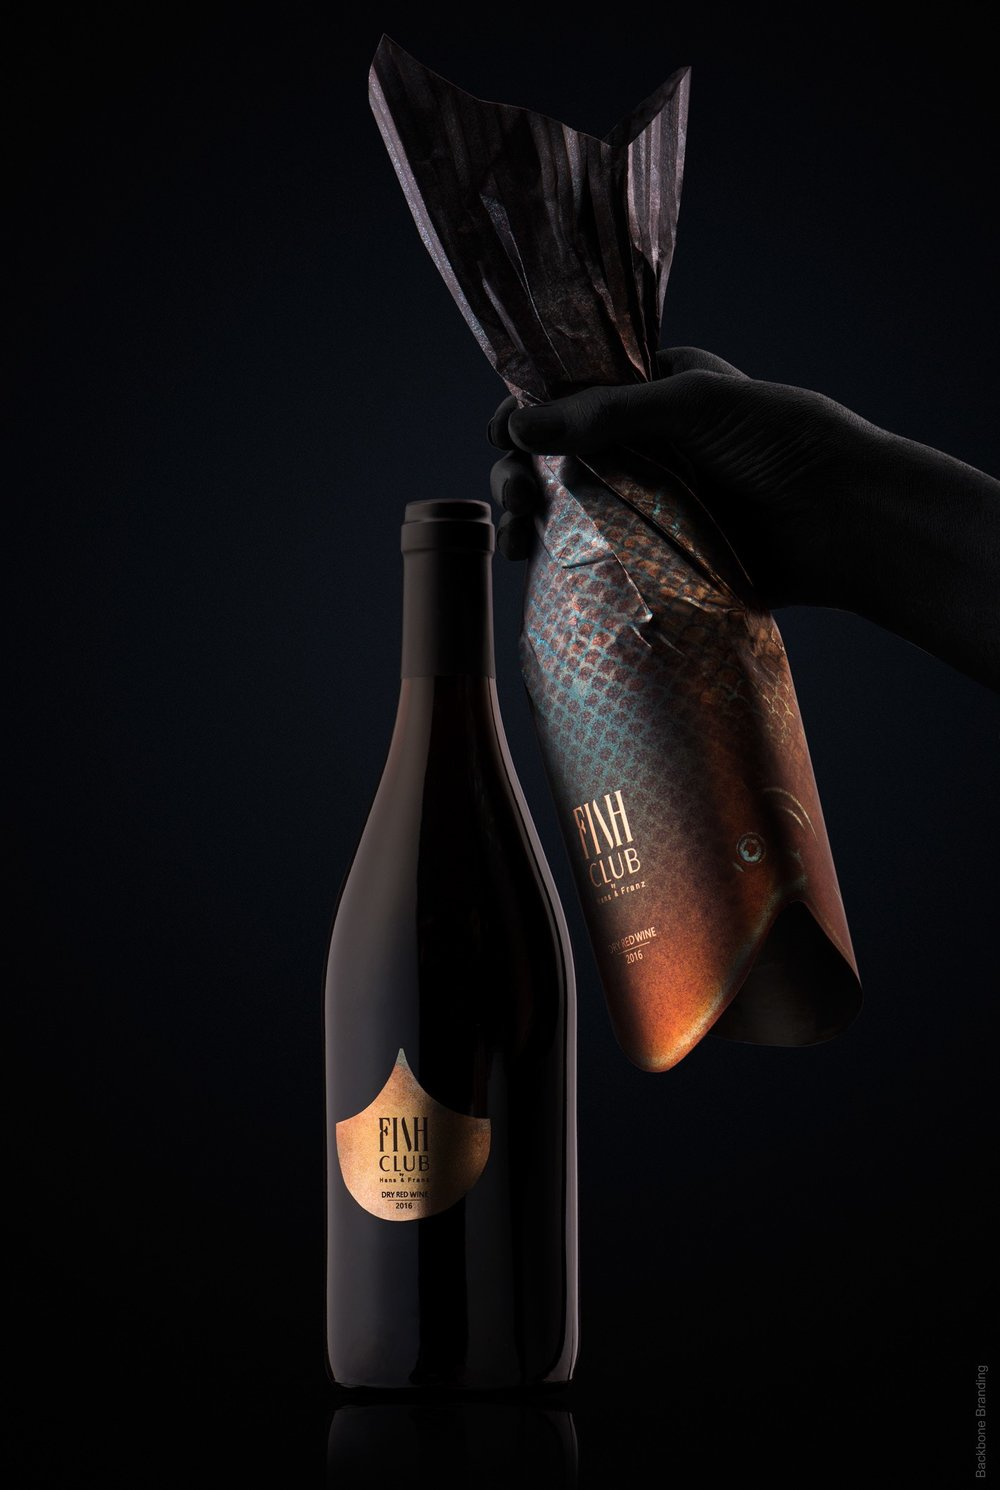 Backbone Branding / Fish Club wine